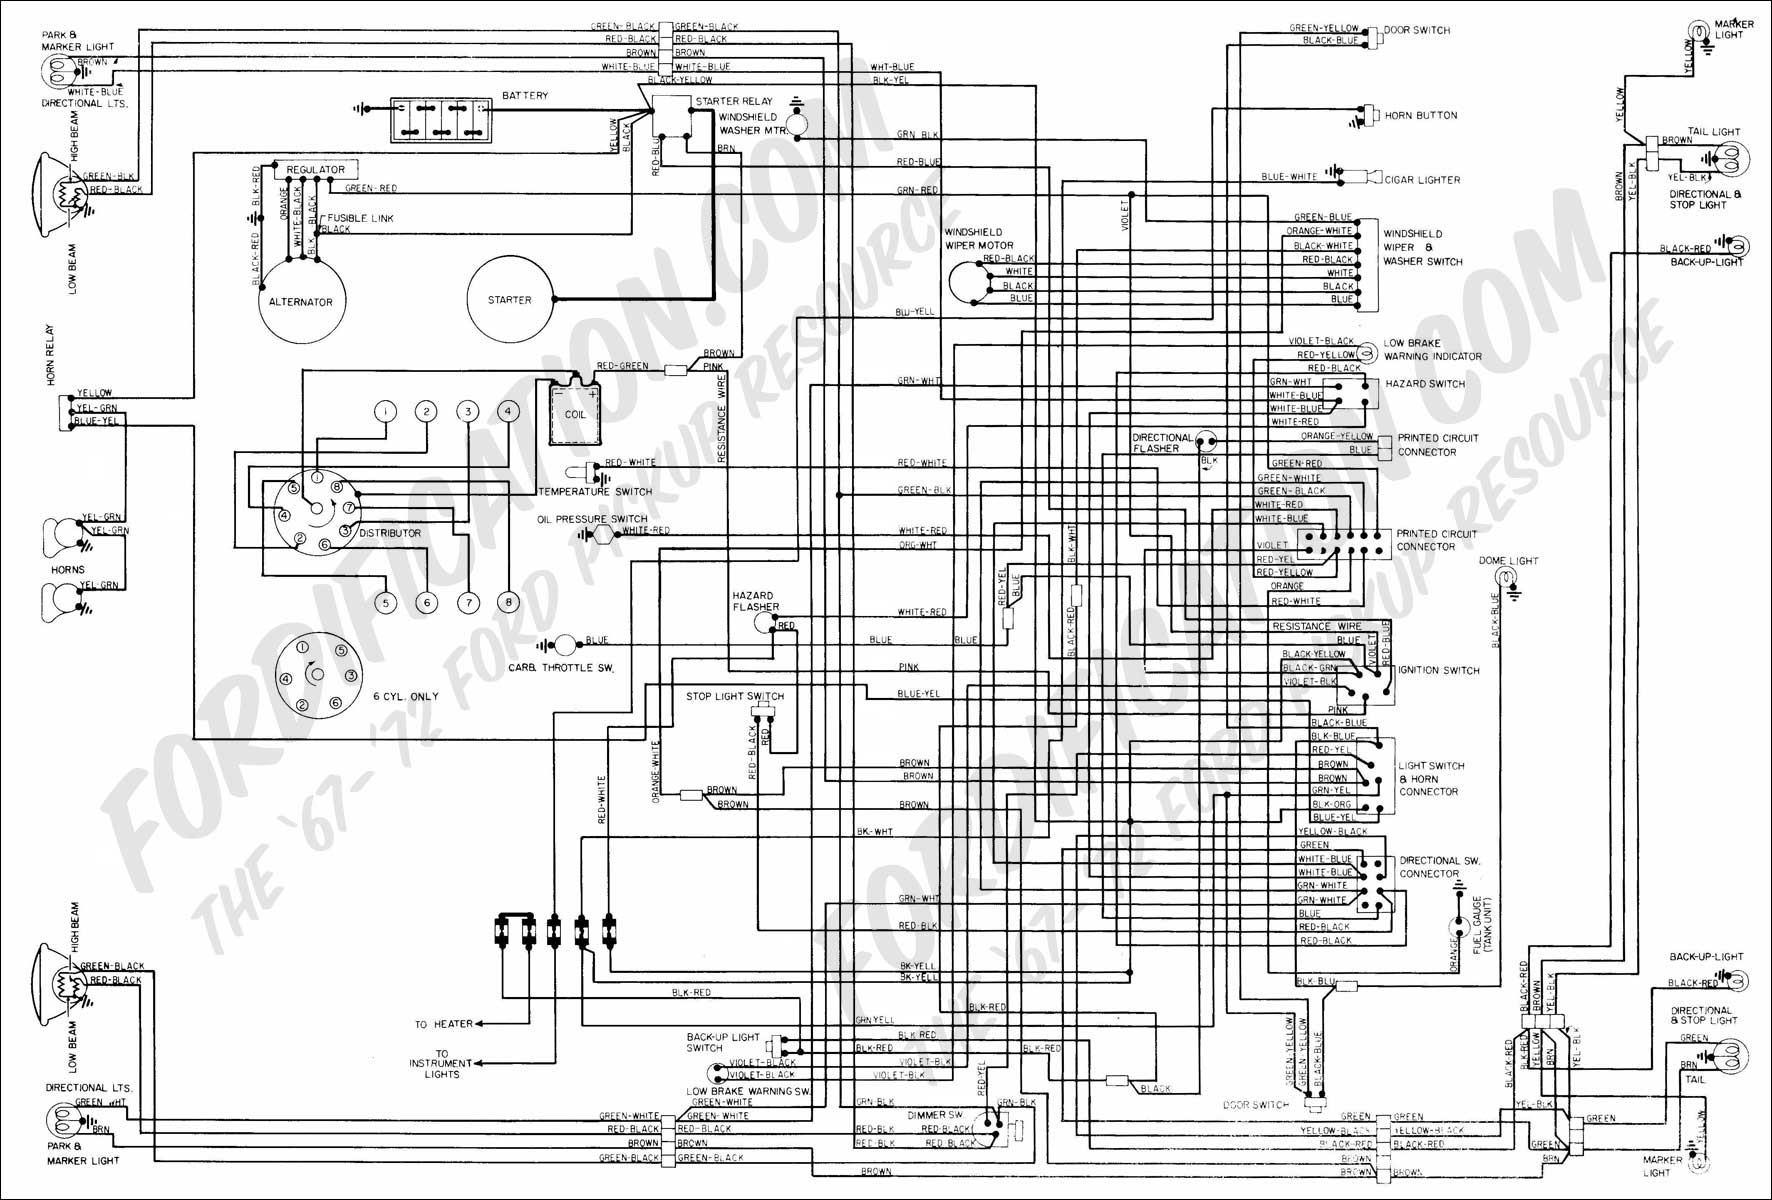 wiring diagram 72_quick 2002 ford f250 wiring diagram efcaviation com 1999 ford f350 wiring diagram at bakdesigns.co